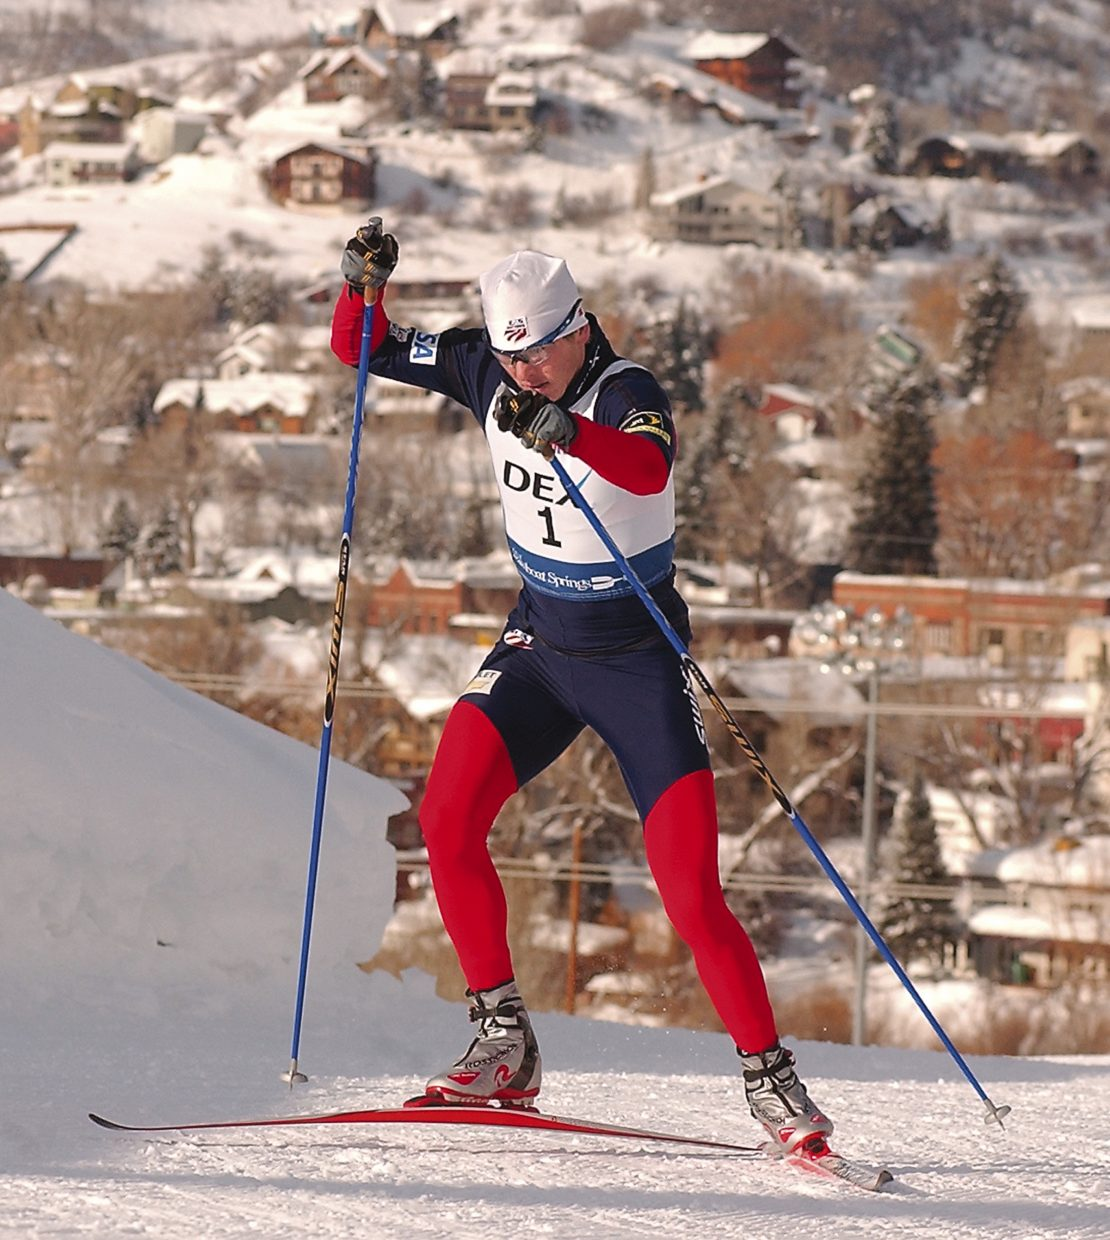 Steamboat Springs Nordic combined skier Todd Lodwick races along the Howelsen Hill cross-country course during the U.S. Nordic combined championships in 2006.